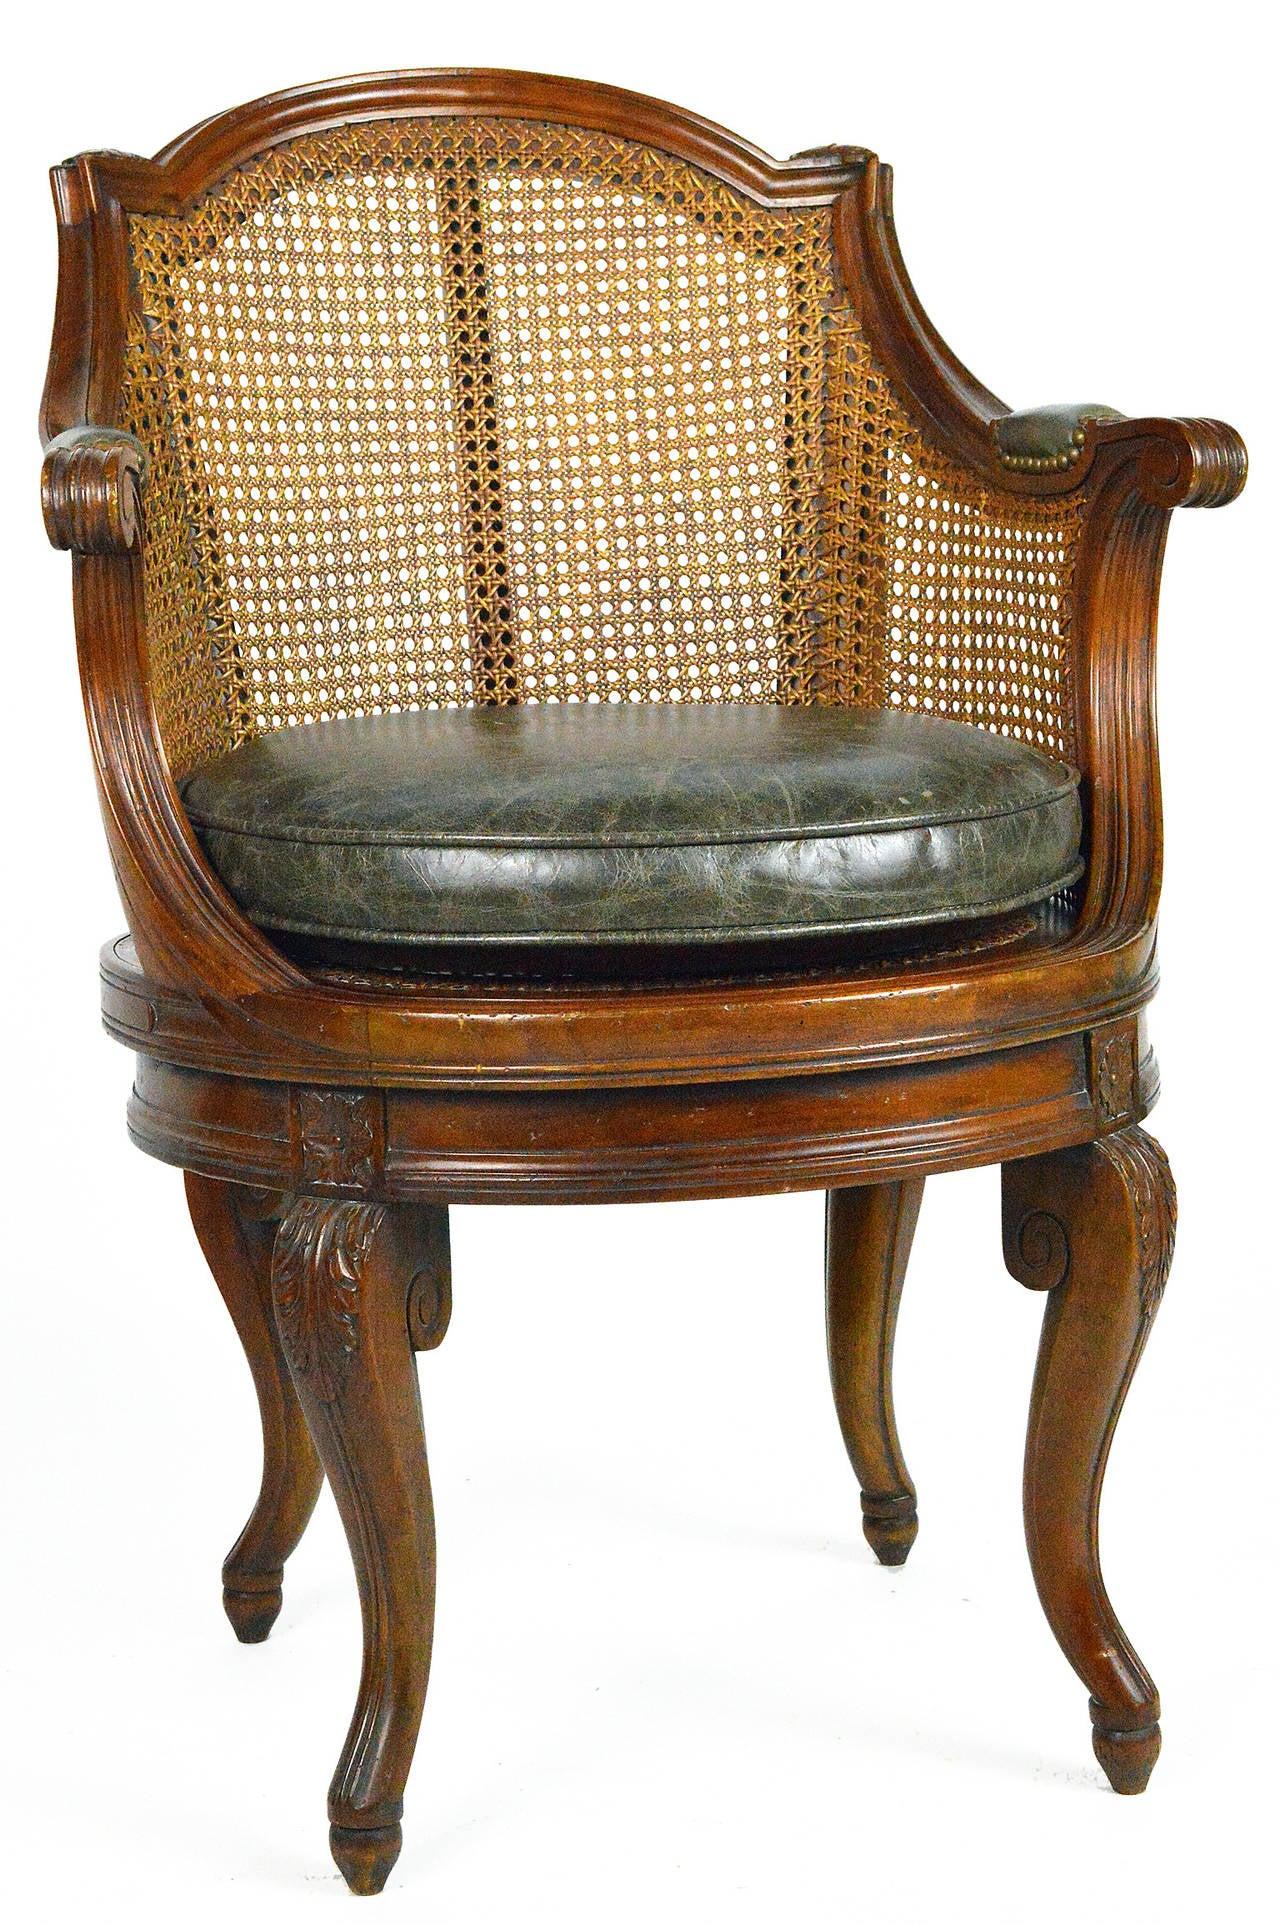 French walnut barrel back swivel armchair having a cane back and seat with acanthus leaf carving to the knee, ending in cabriole legs with leather covered arms and loose leather seat.